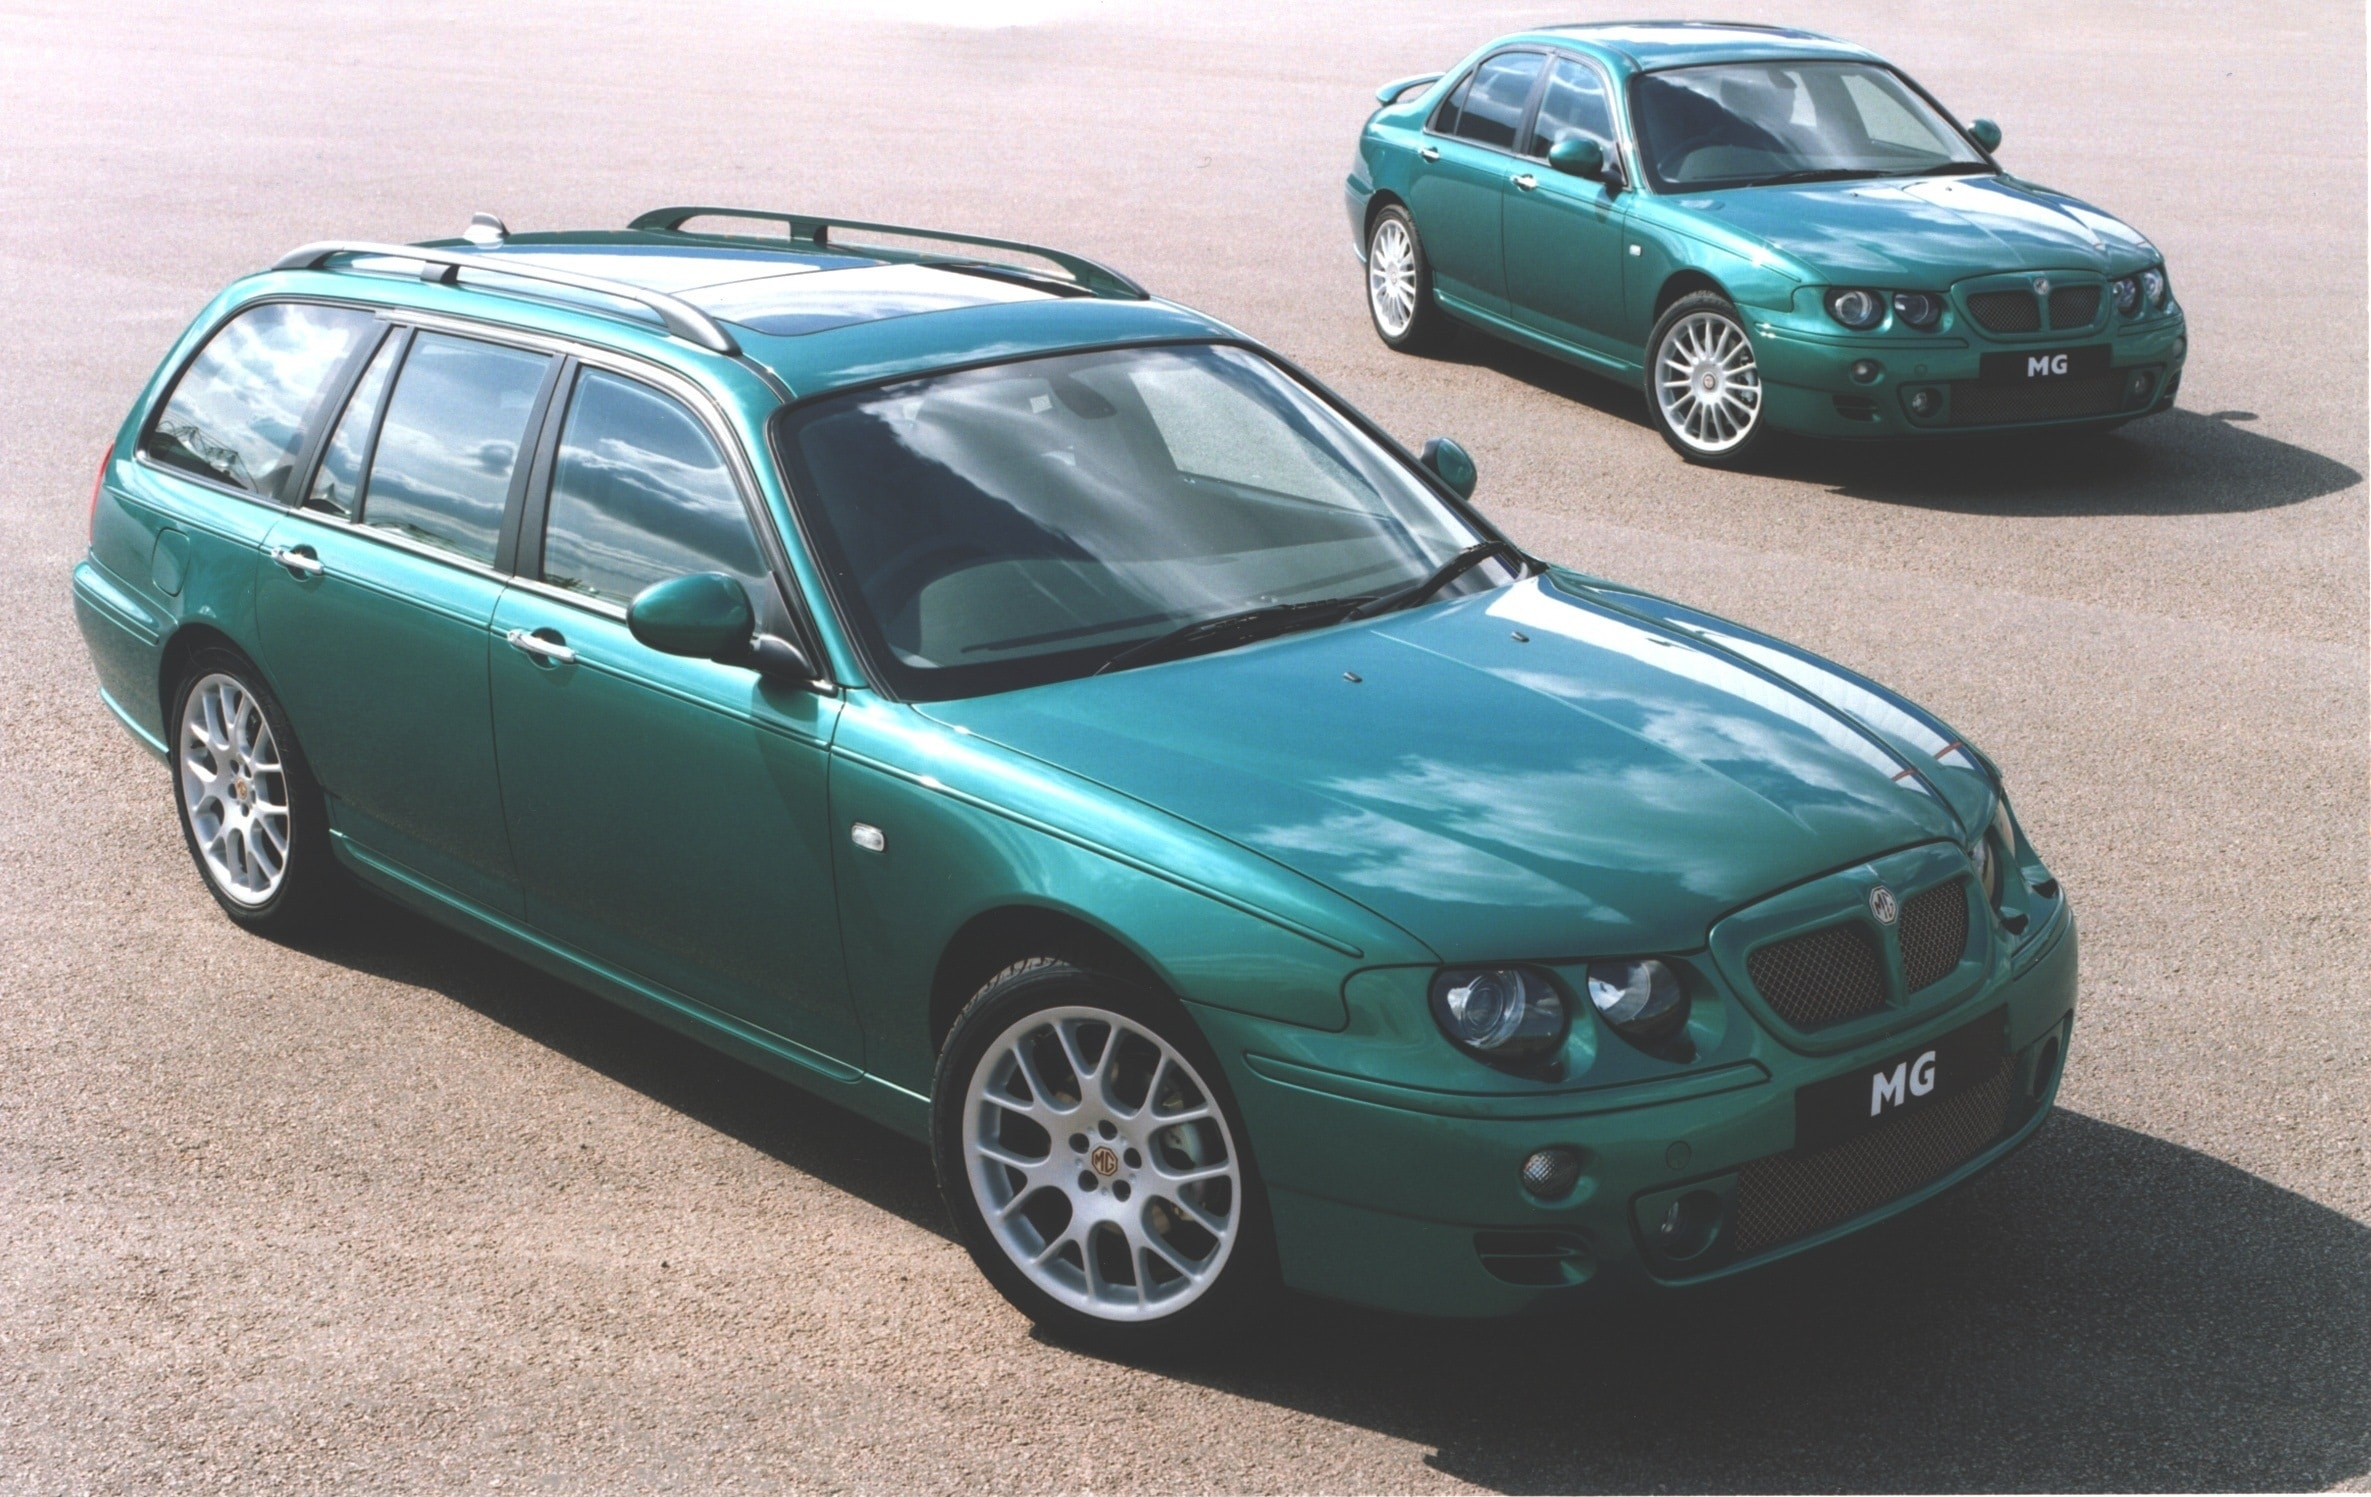 mg zs 180, mg, mg zs, rover, btcc, cars, motoring, automotive, v6, performance car, retro car, classic car, car, classic, retro, motorsport, rob collard, longbridge, uk, police car, mg zt, zt, zt-t